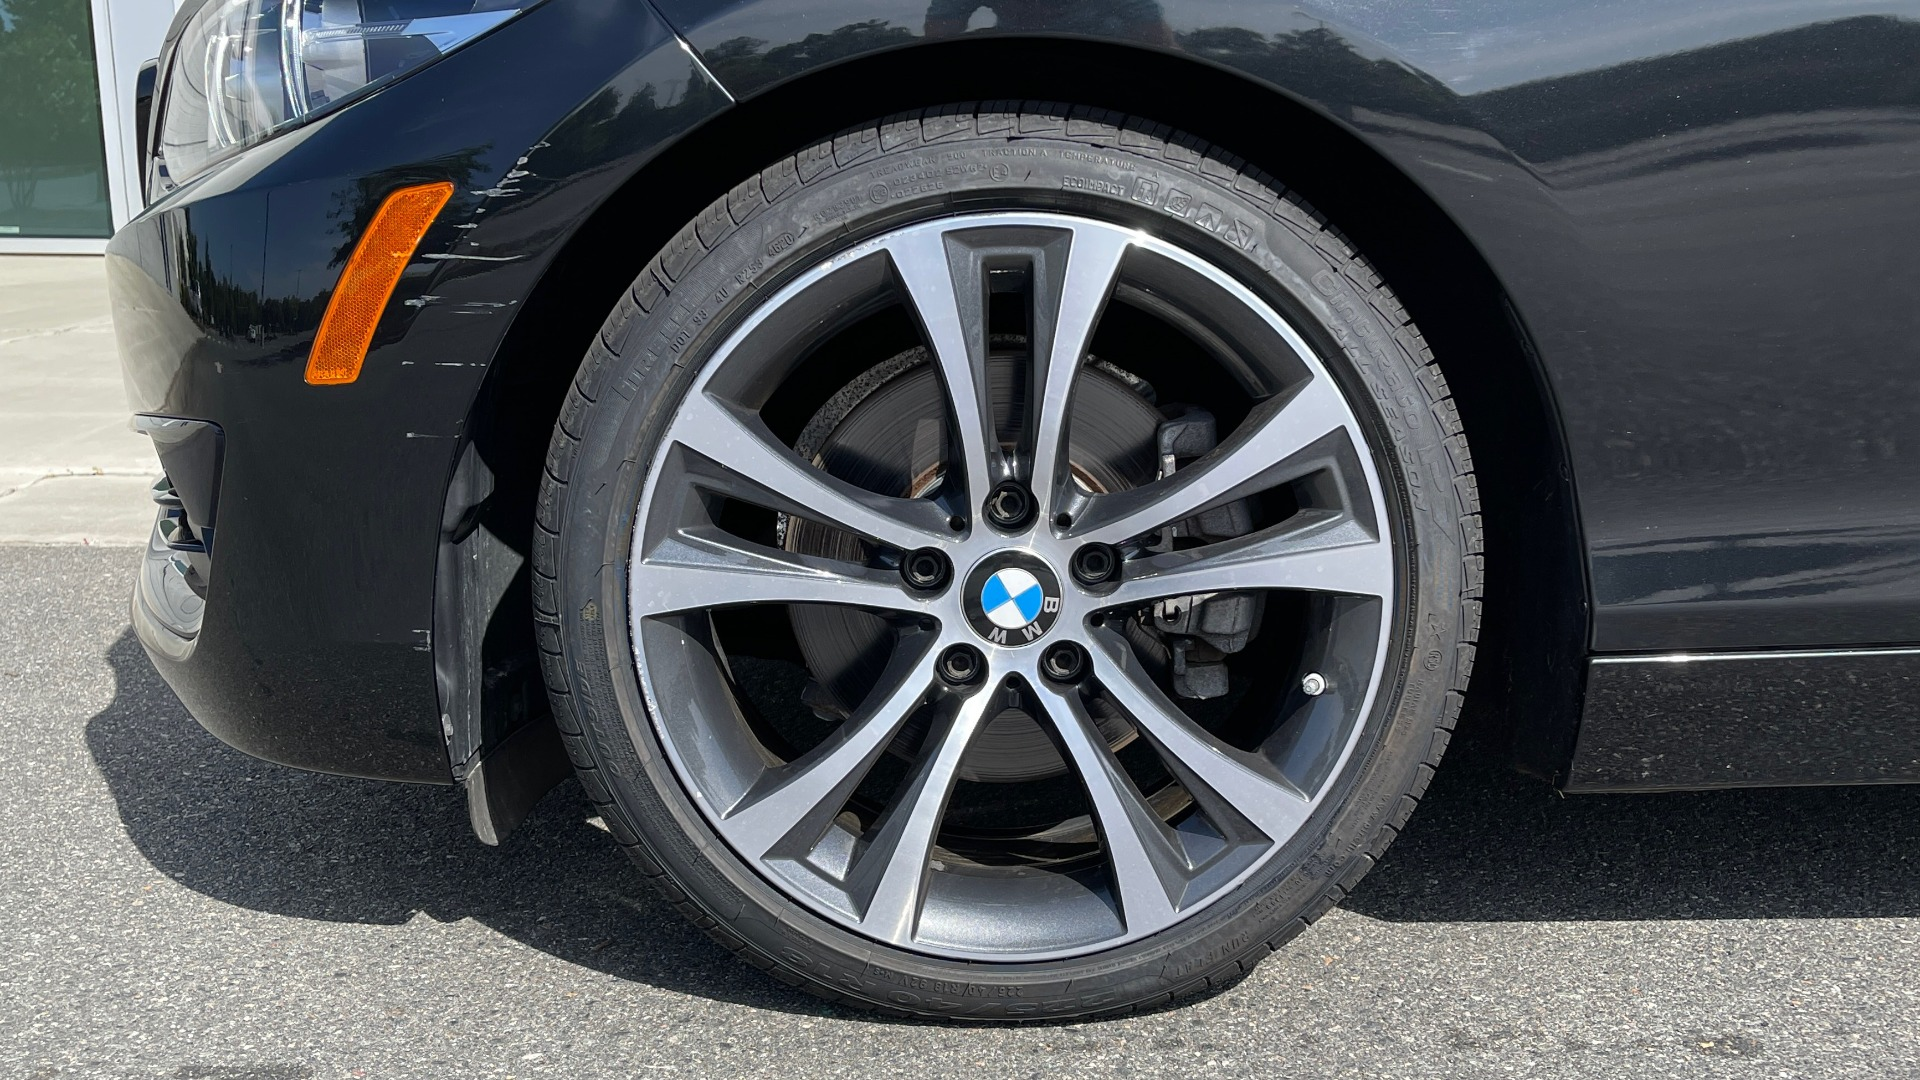 Used 2018 BMW 2 SERIES 230I XDRIVE PREMIUM / CONV PKG / NAV / SUNROOF / REARVIEW for sale $30,795 at Formula Imports in Charlotte NC 28227 52